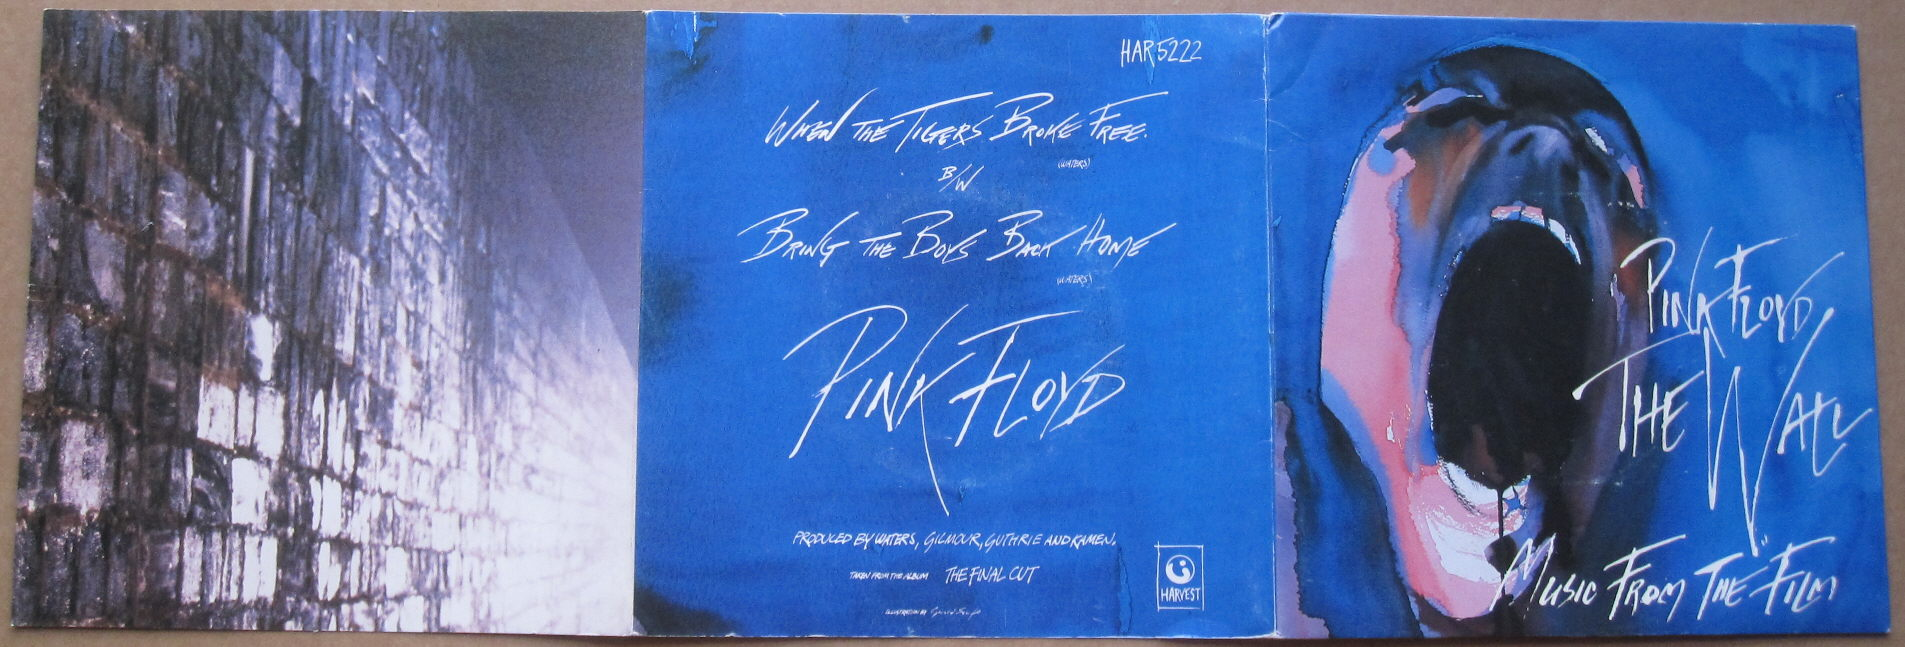 The best: pink floyd when the tigers broke free single dating